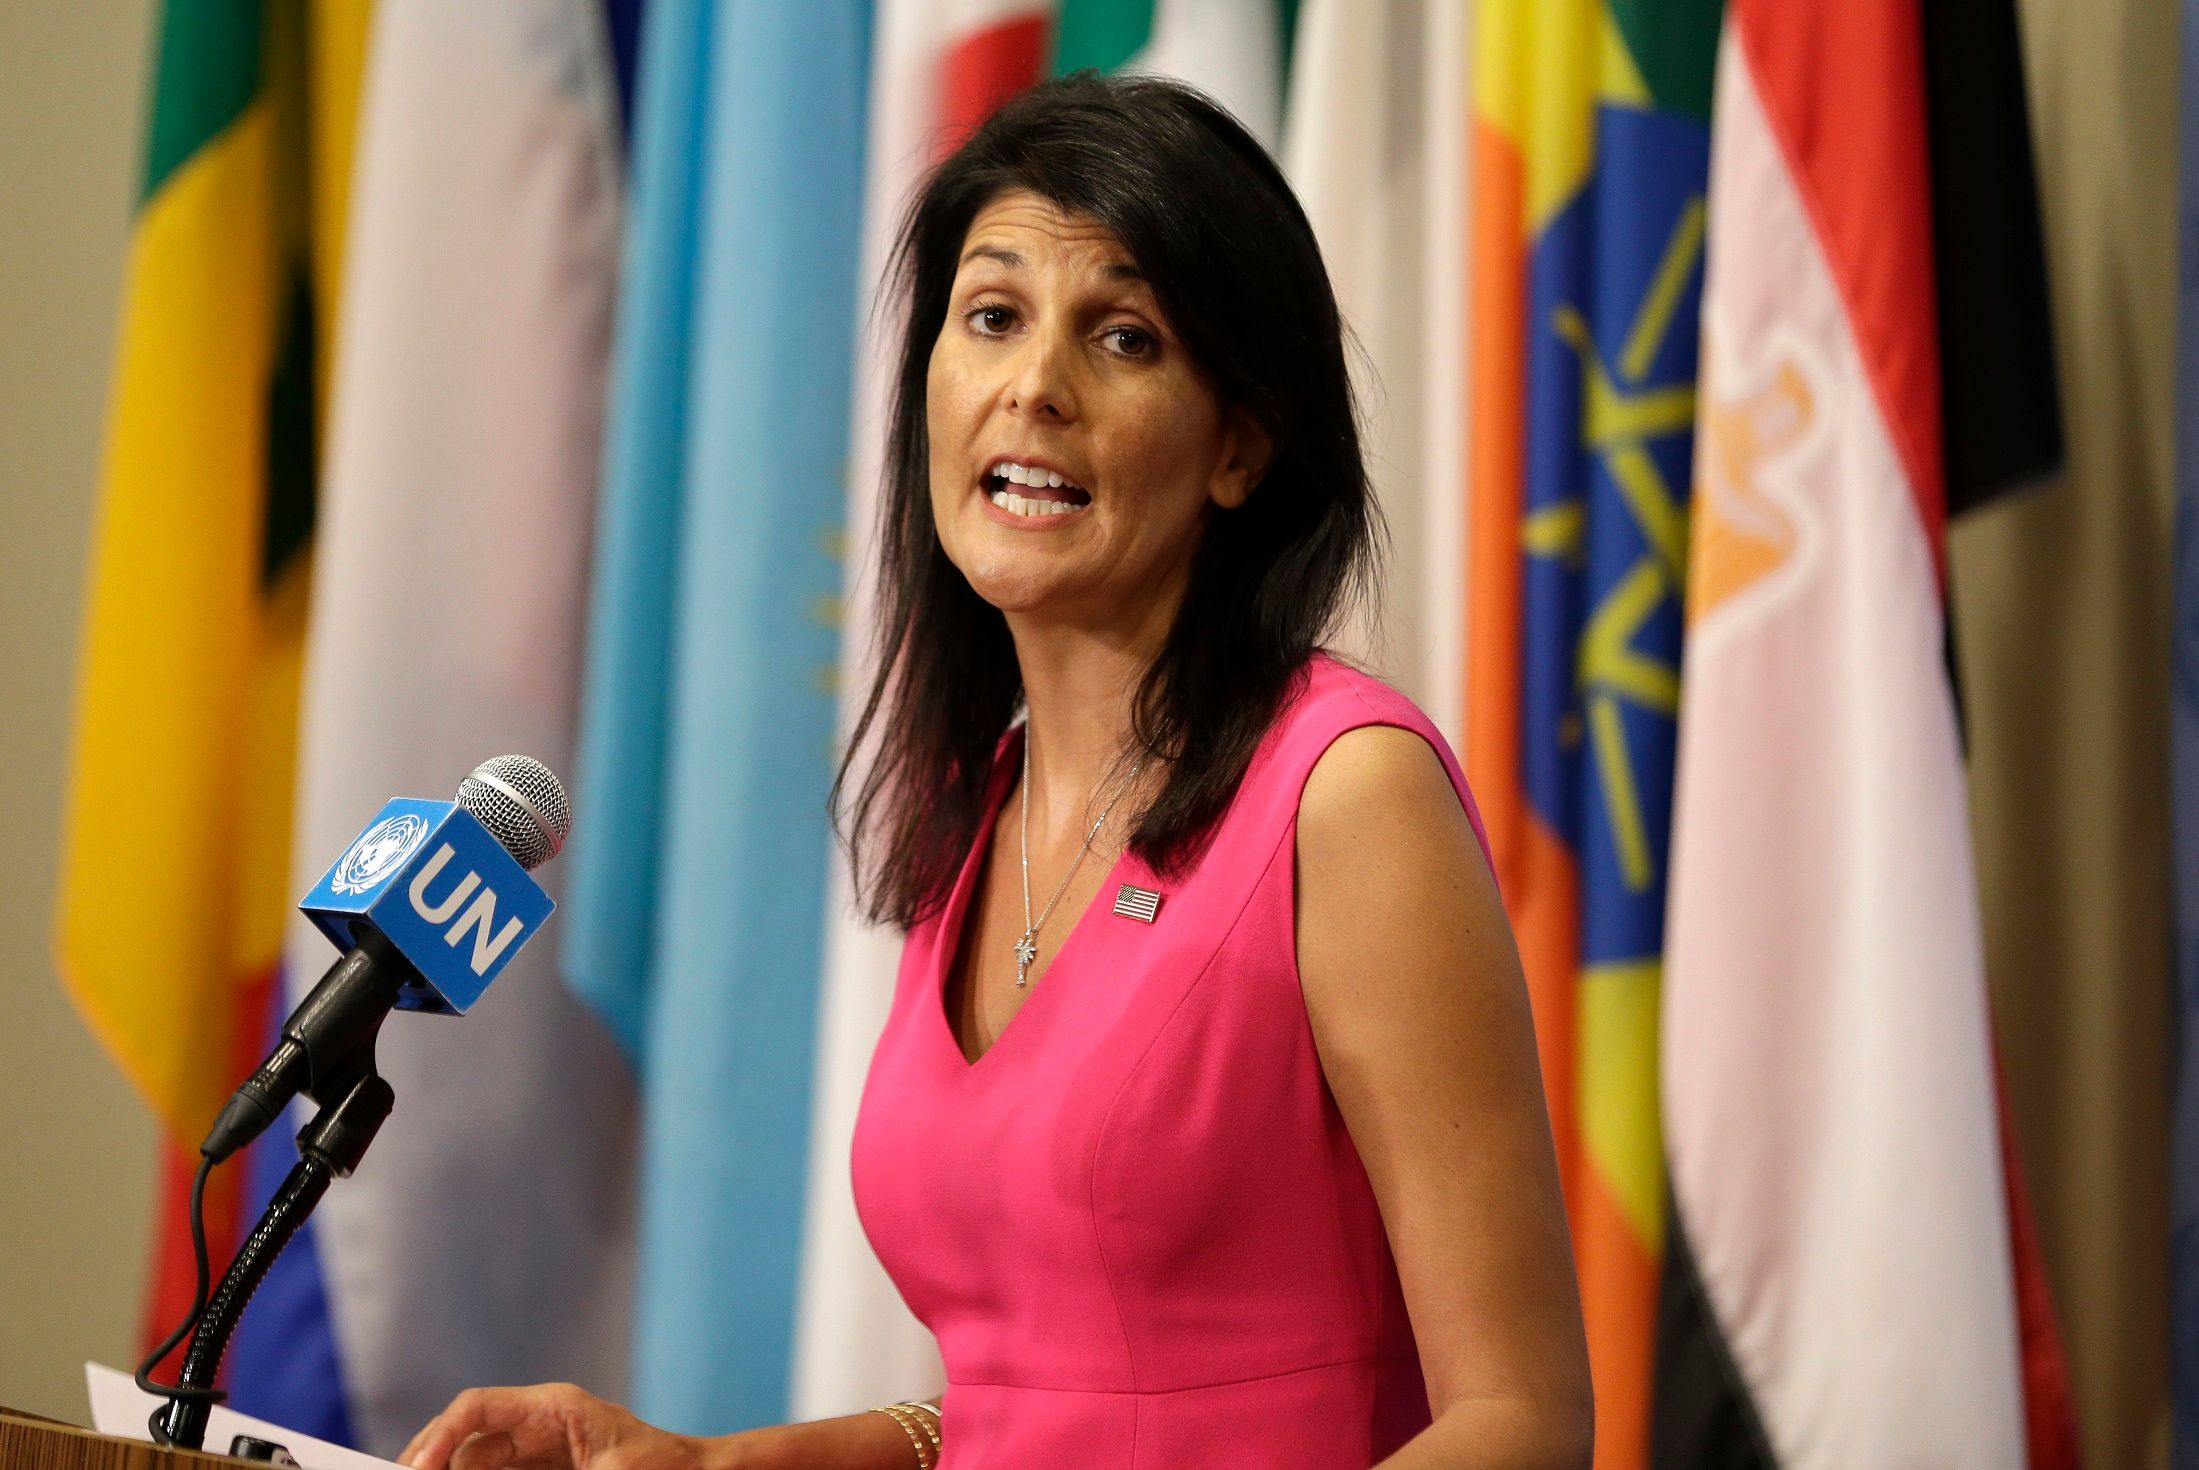 U.S. Says UNIFIL Chief 'Blind' to Hizbullah Arms